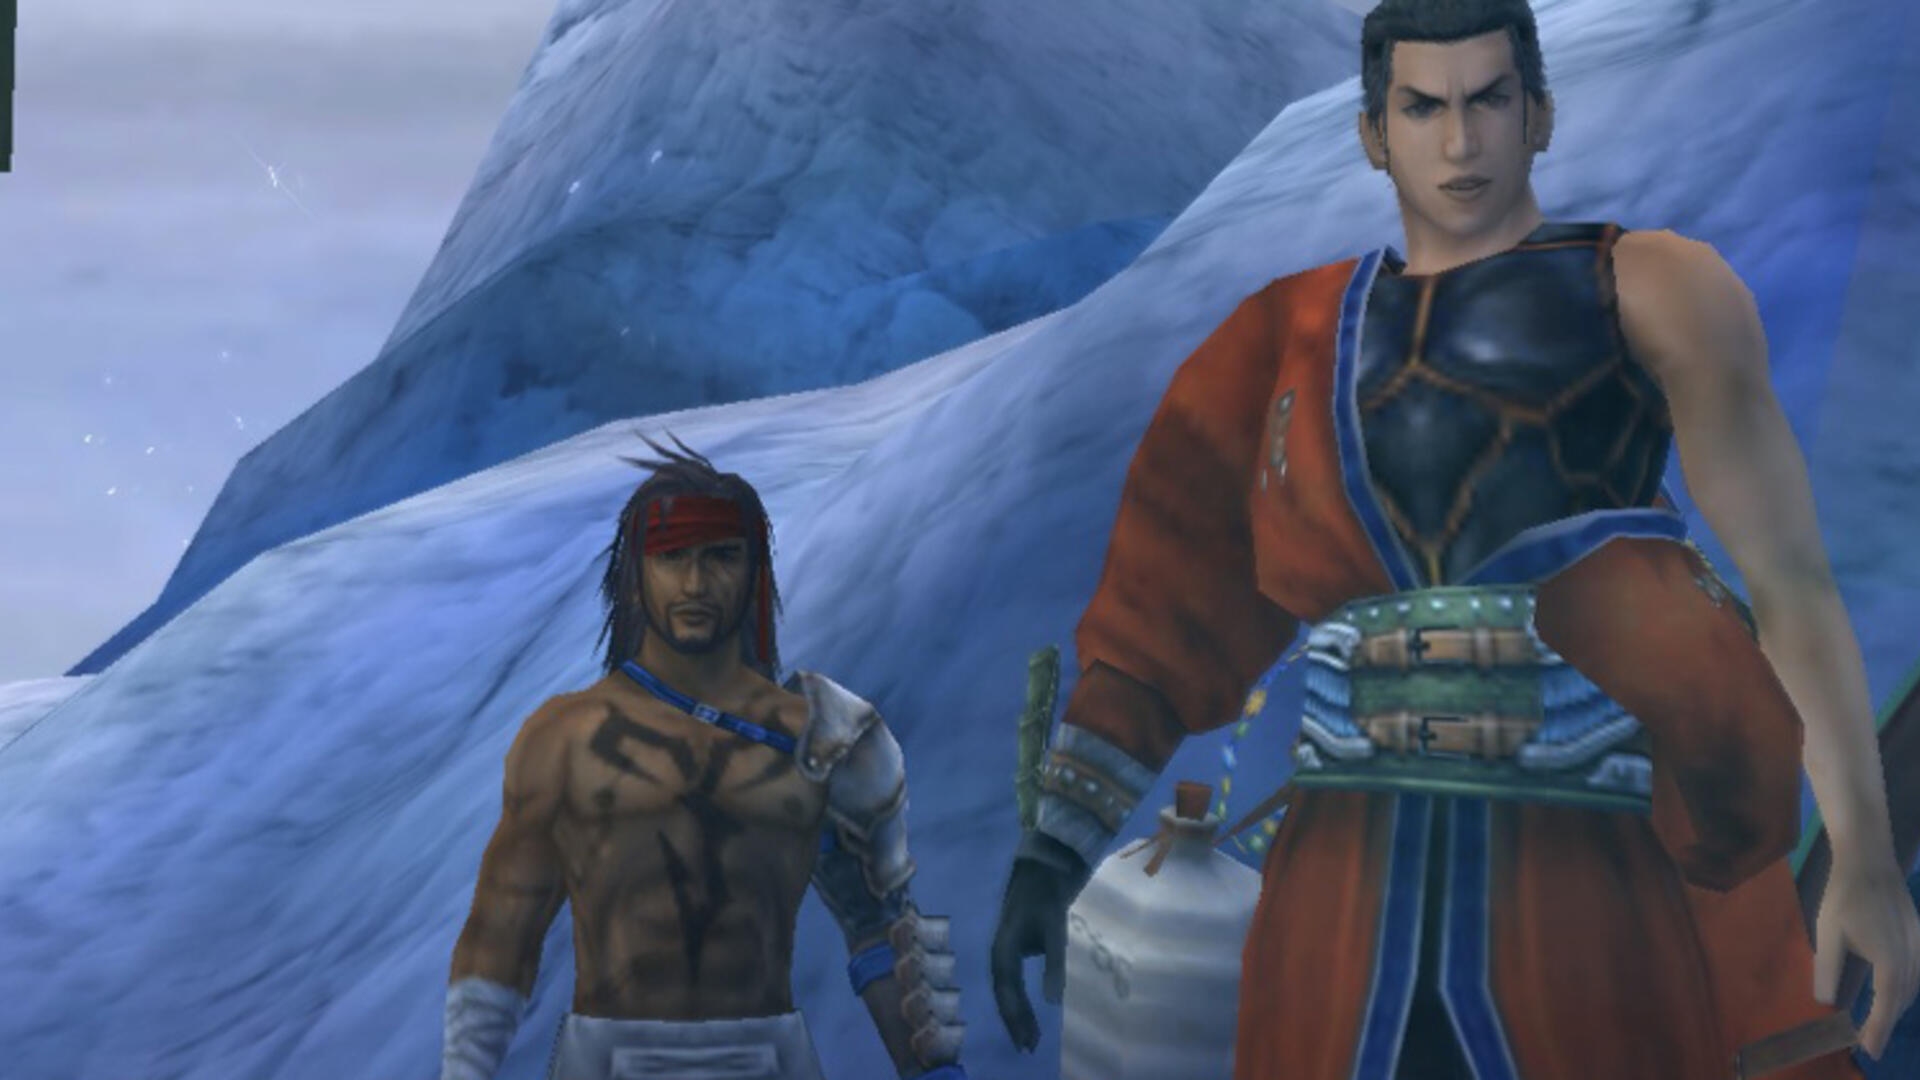 Jecht, Braska, and Auron: The Final Fantasy X Road Comedy I Wish We Had